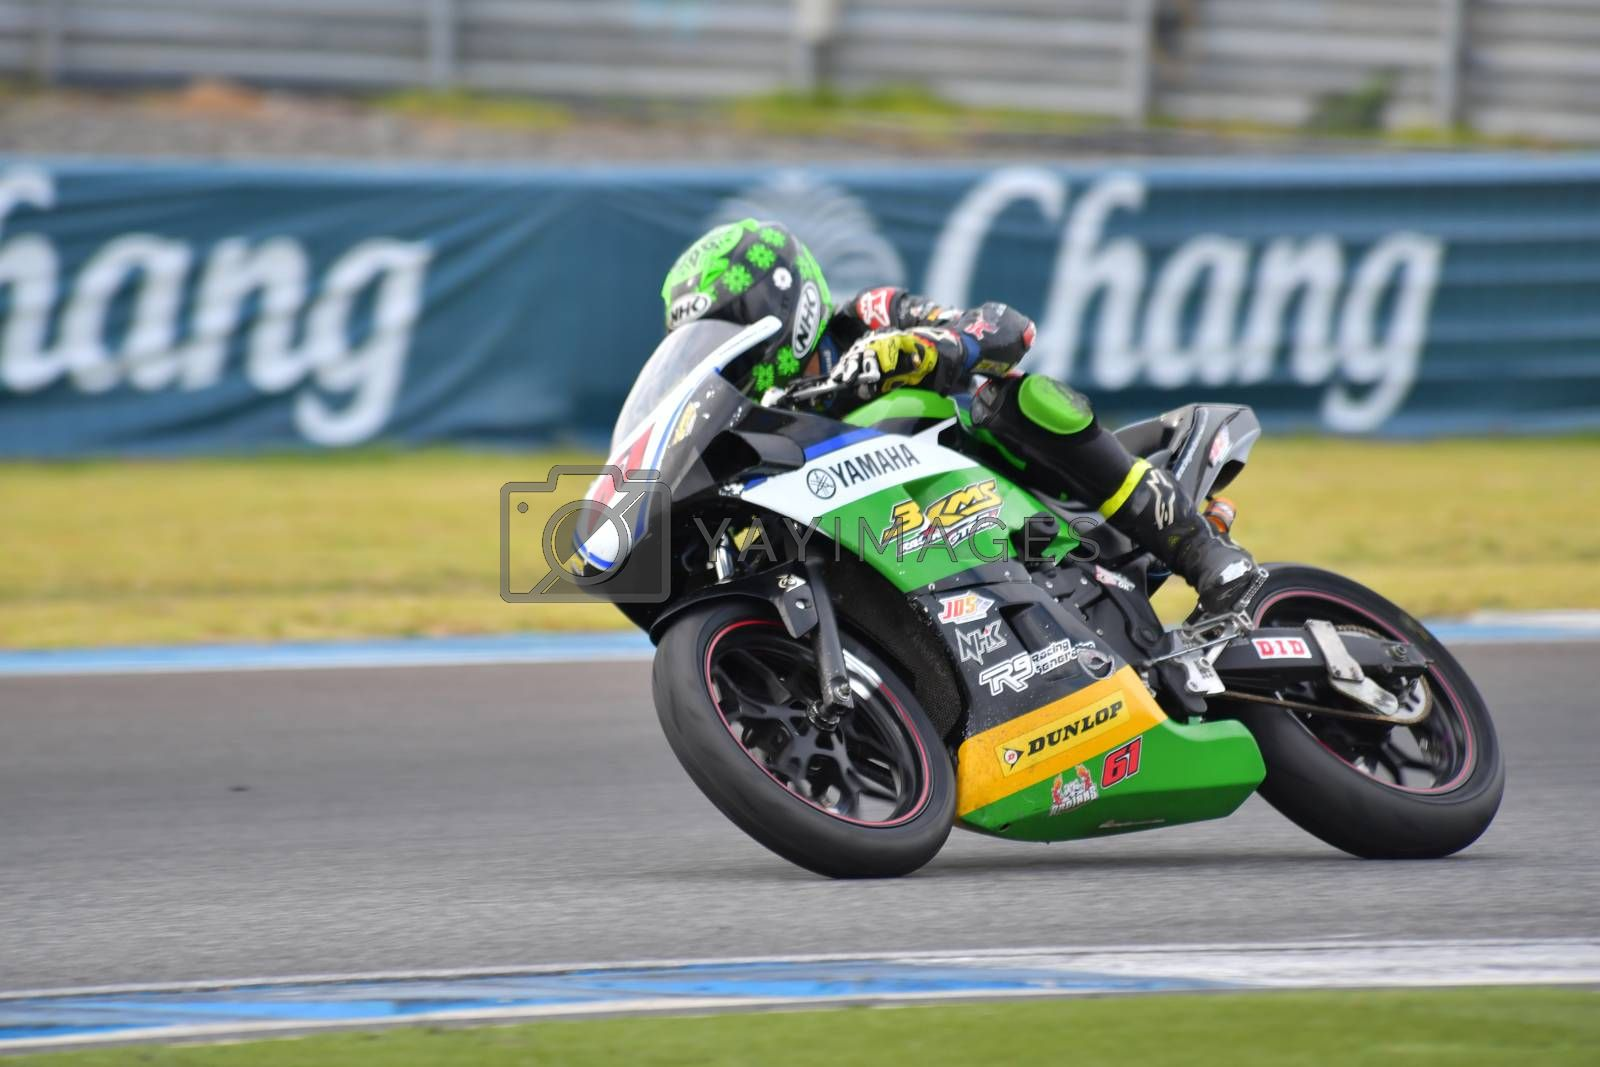 BURIRAM - DECEMBER 4 : Ferlando Herdian of Indian with Yamaha motorcycle of Asia Production 250cc. in Asia Road Racing Championship 2016 Round 6 at Chang International Racing Circuit on December 4, 2016, Buriram, Thailand.